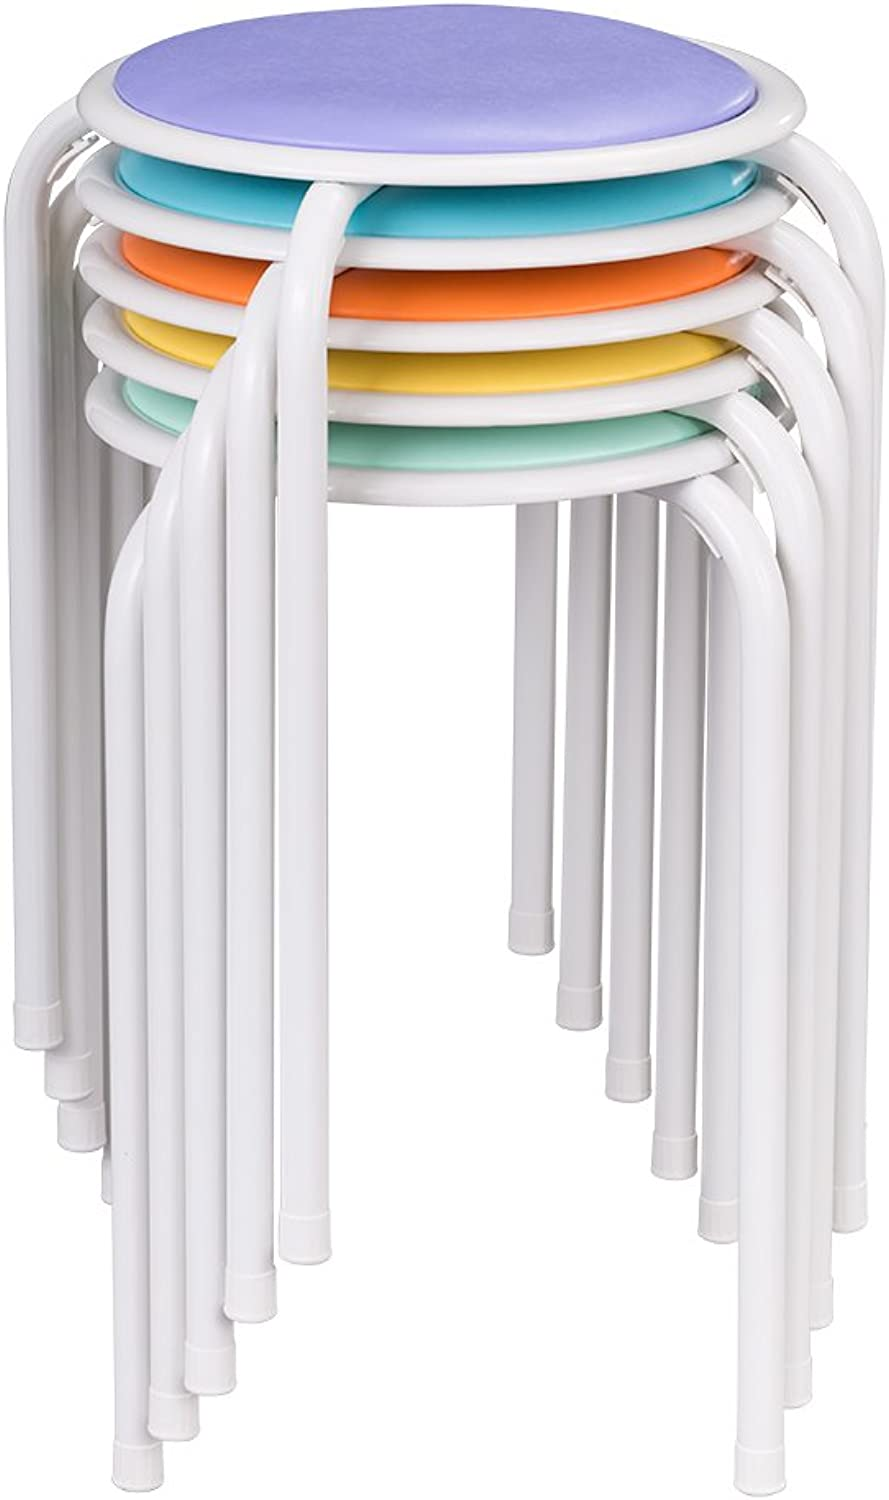 Fat Catalog Assorted color Metal Stack Stool with Padded Seat, ALT-1100-SO (Pack of 5)